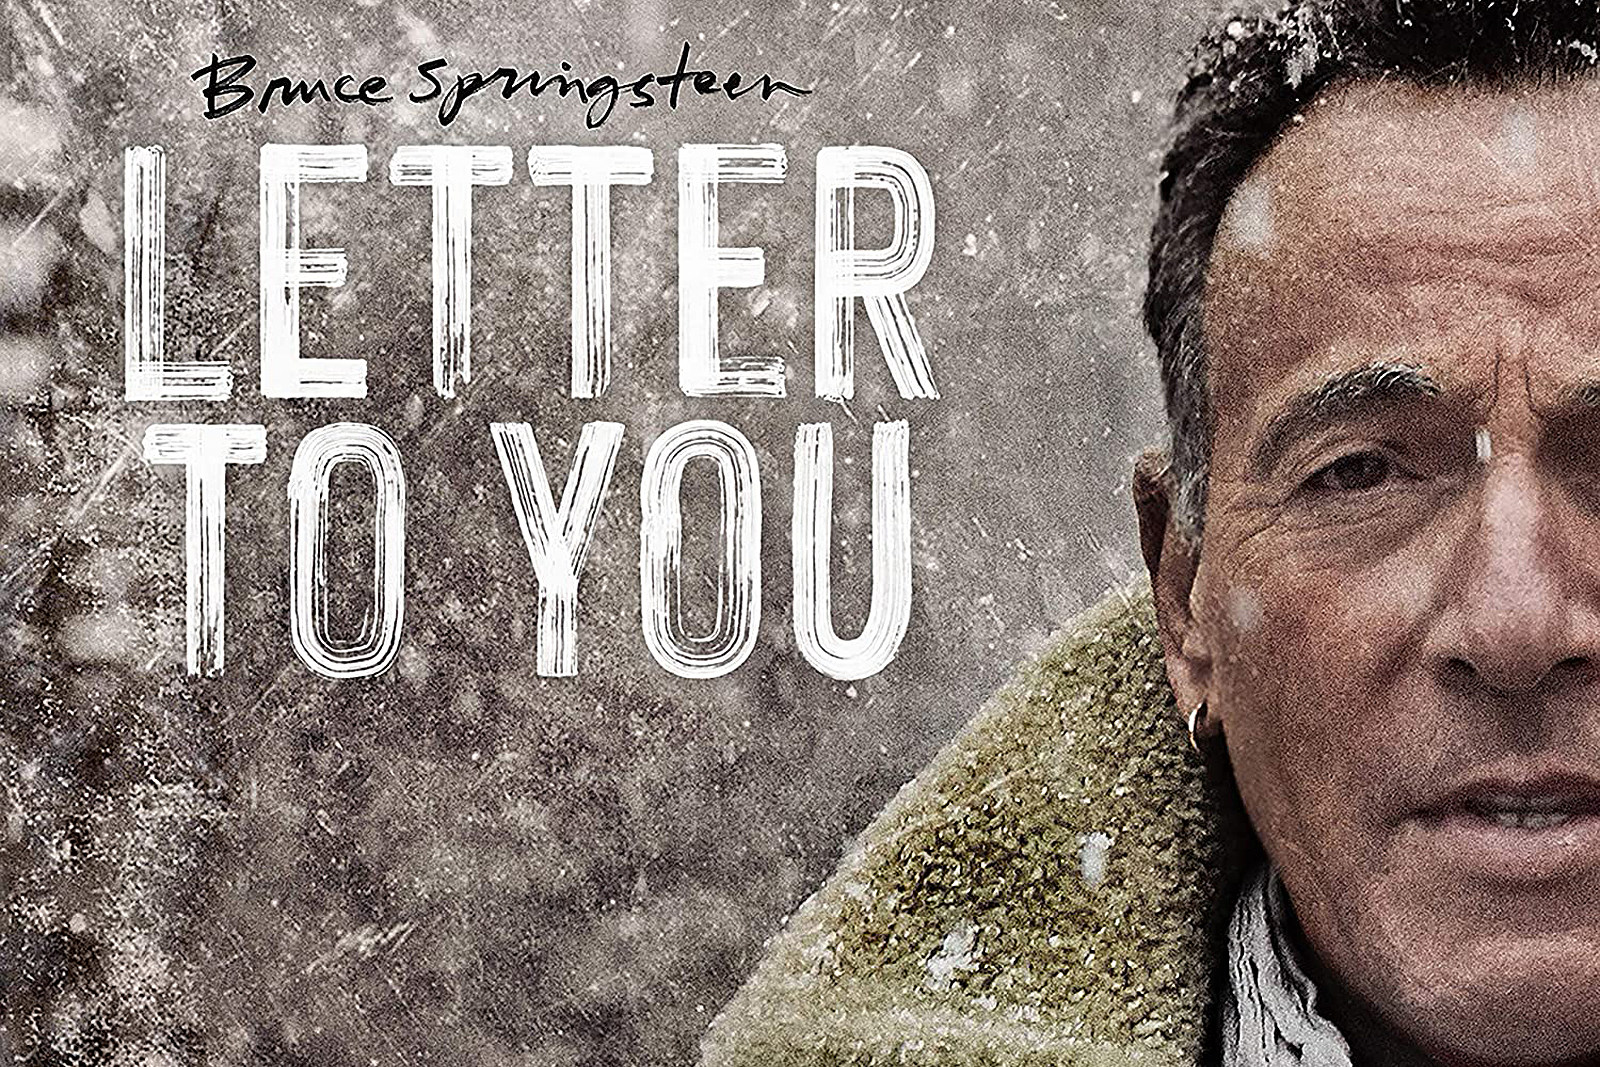 Bruce Springsteen, 'Letter to You': Album Review